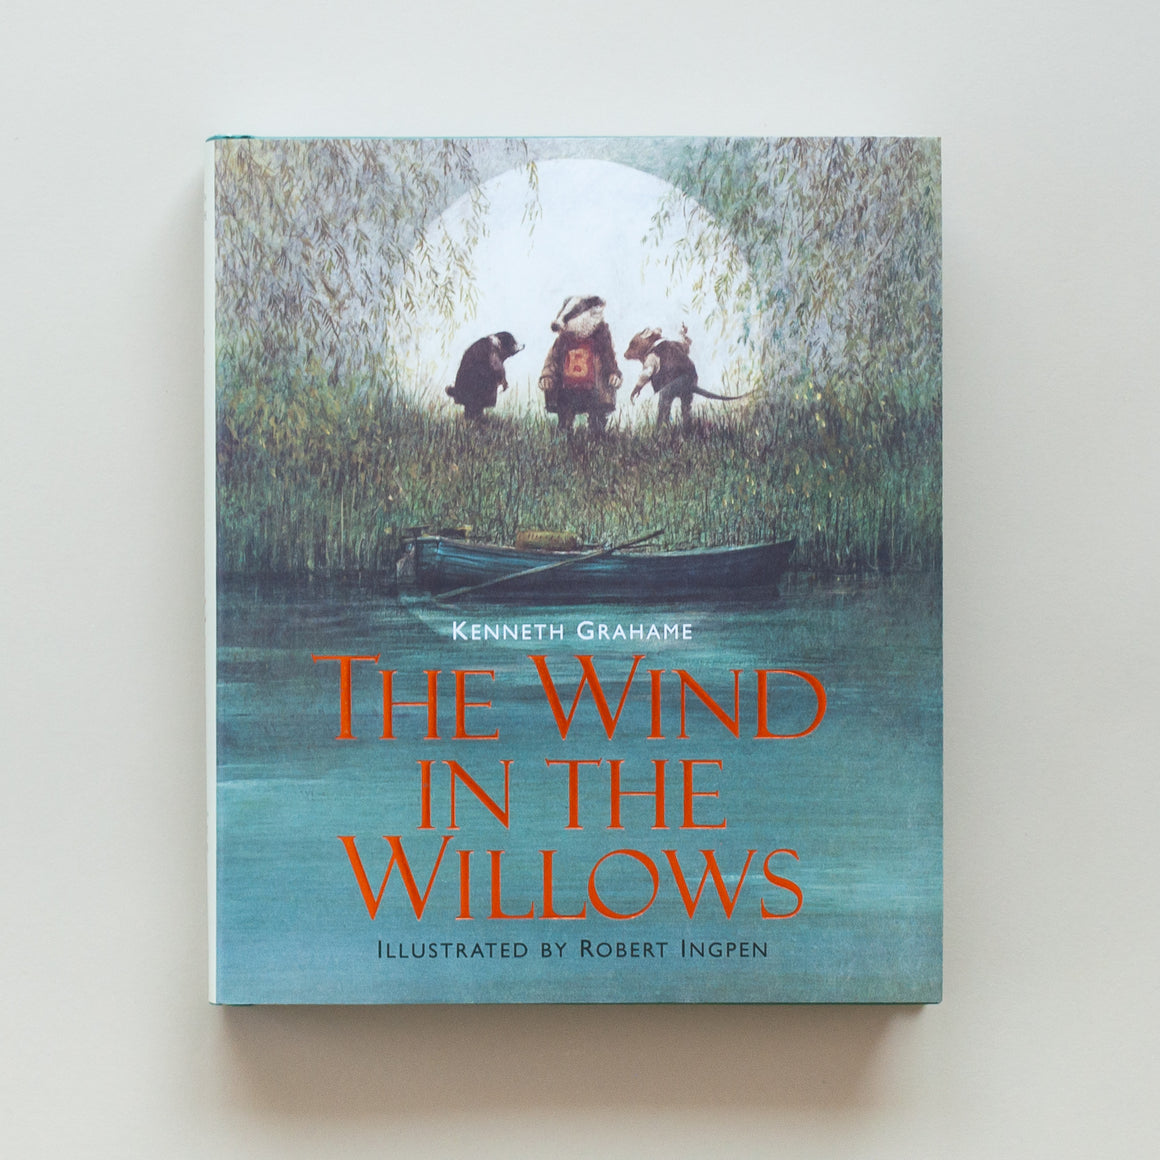 The Wind in the Willows, illustrated edition